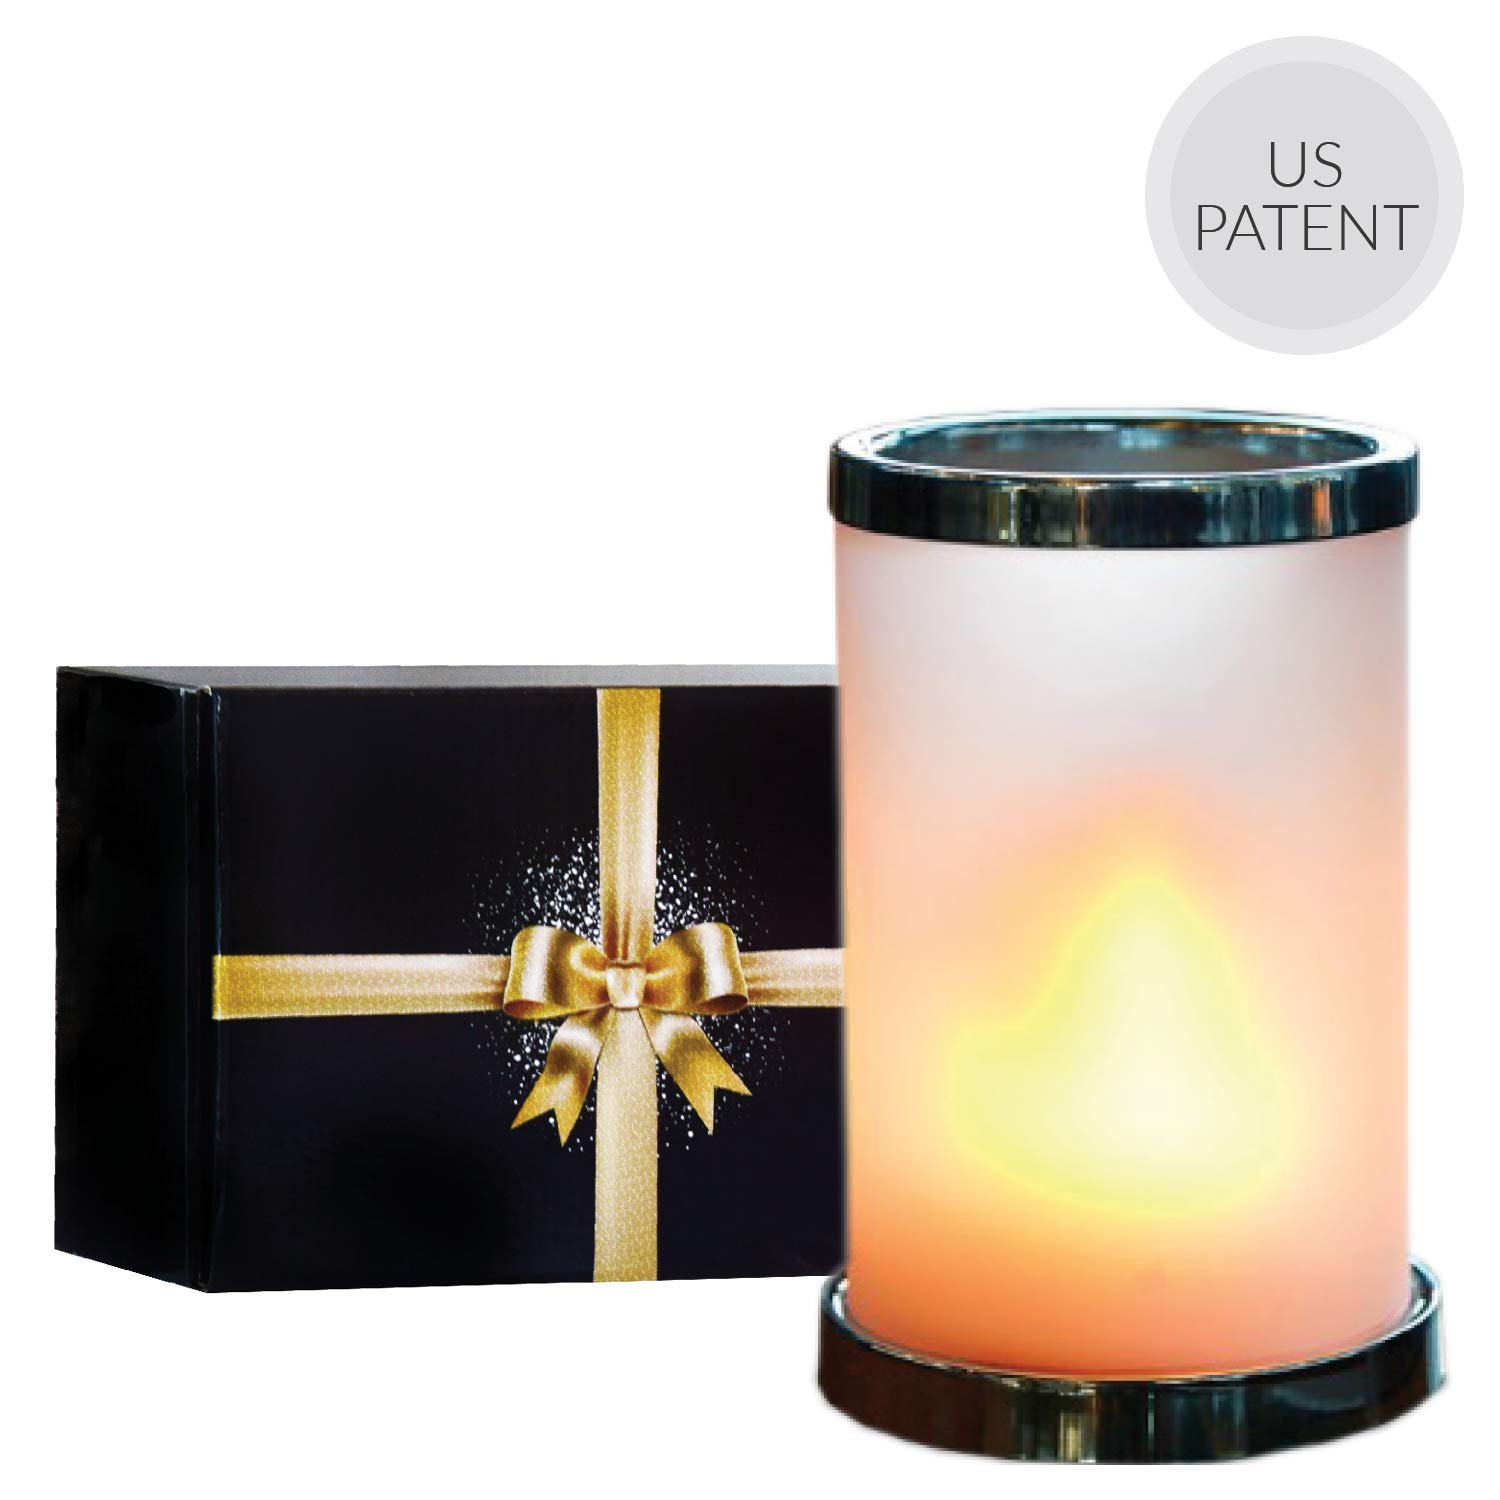 Flame Light with Remote - Frosted Glass Shade Included | Rechargeable Battery Operated LED Candle Table Lamp with Timer | Outdoor Lighting for Home/Hotel/Restaurant/Bar/Party Decor | Ideal Gift